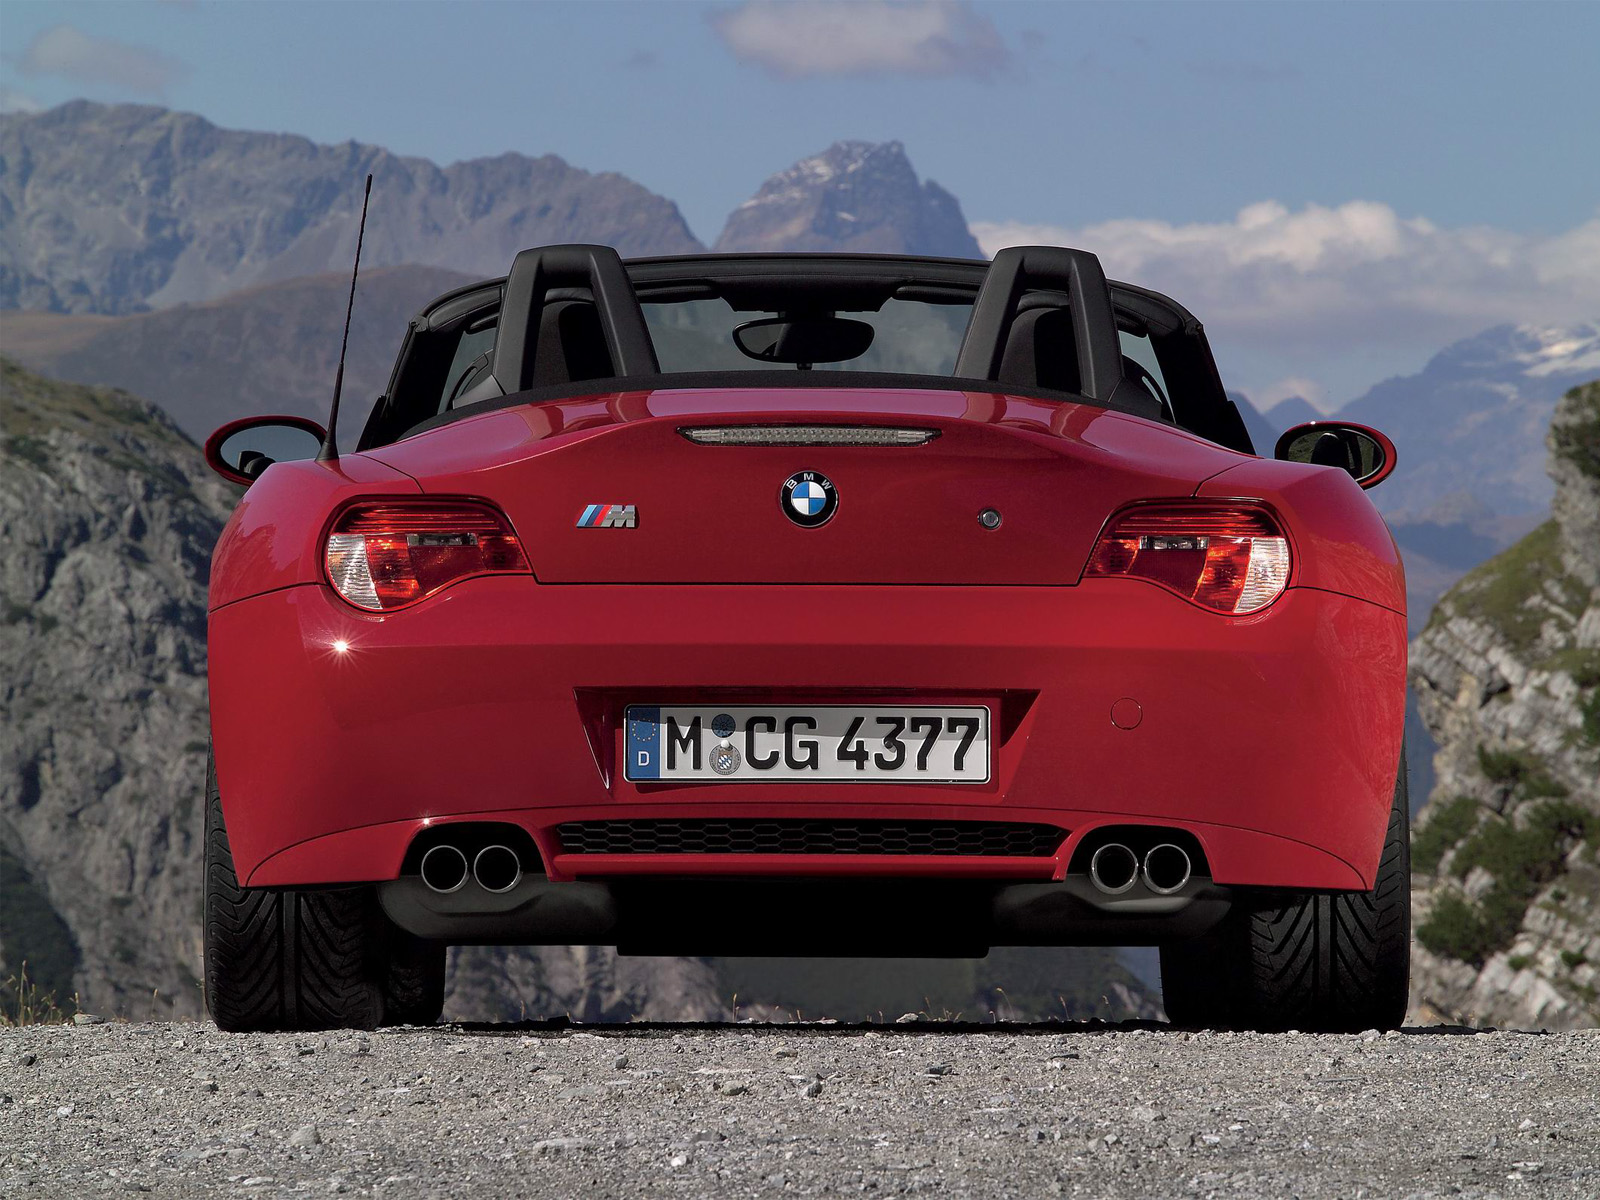 2006 BMW Z4 M Roadster | Top Speed